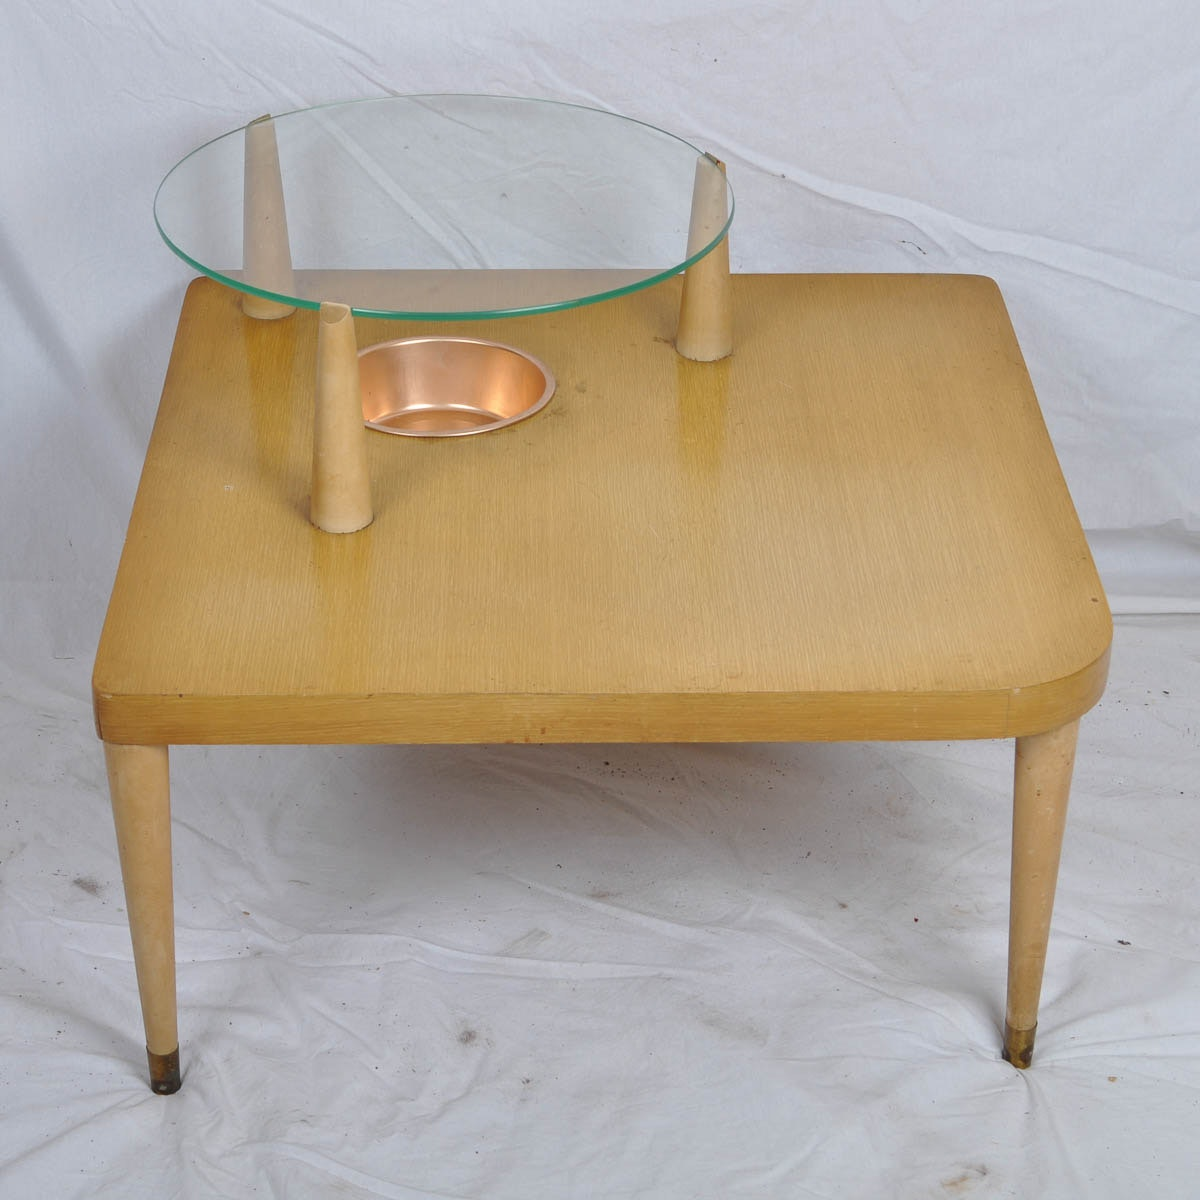 Glass Top Corner Table With Built In Storage Bowl ...